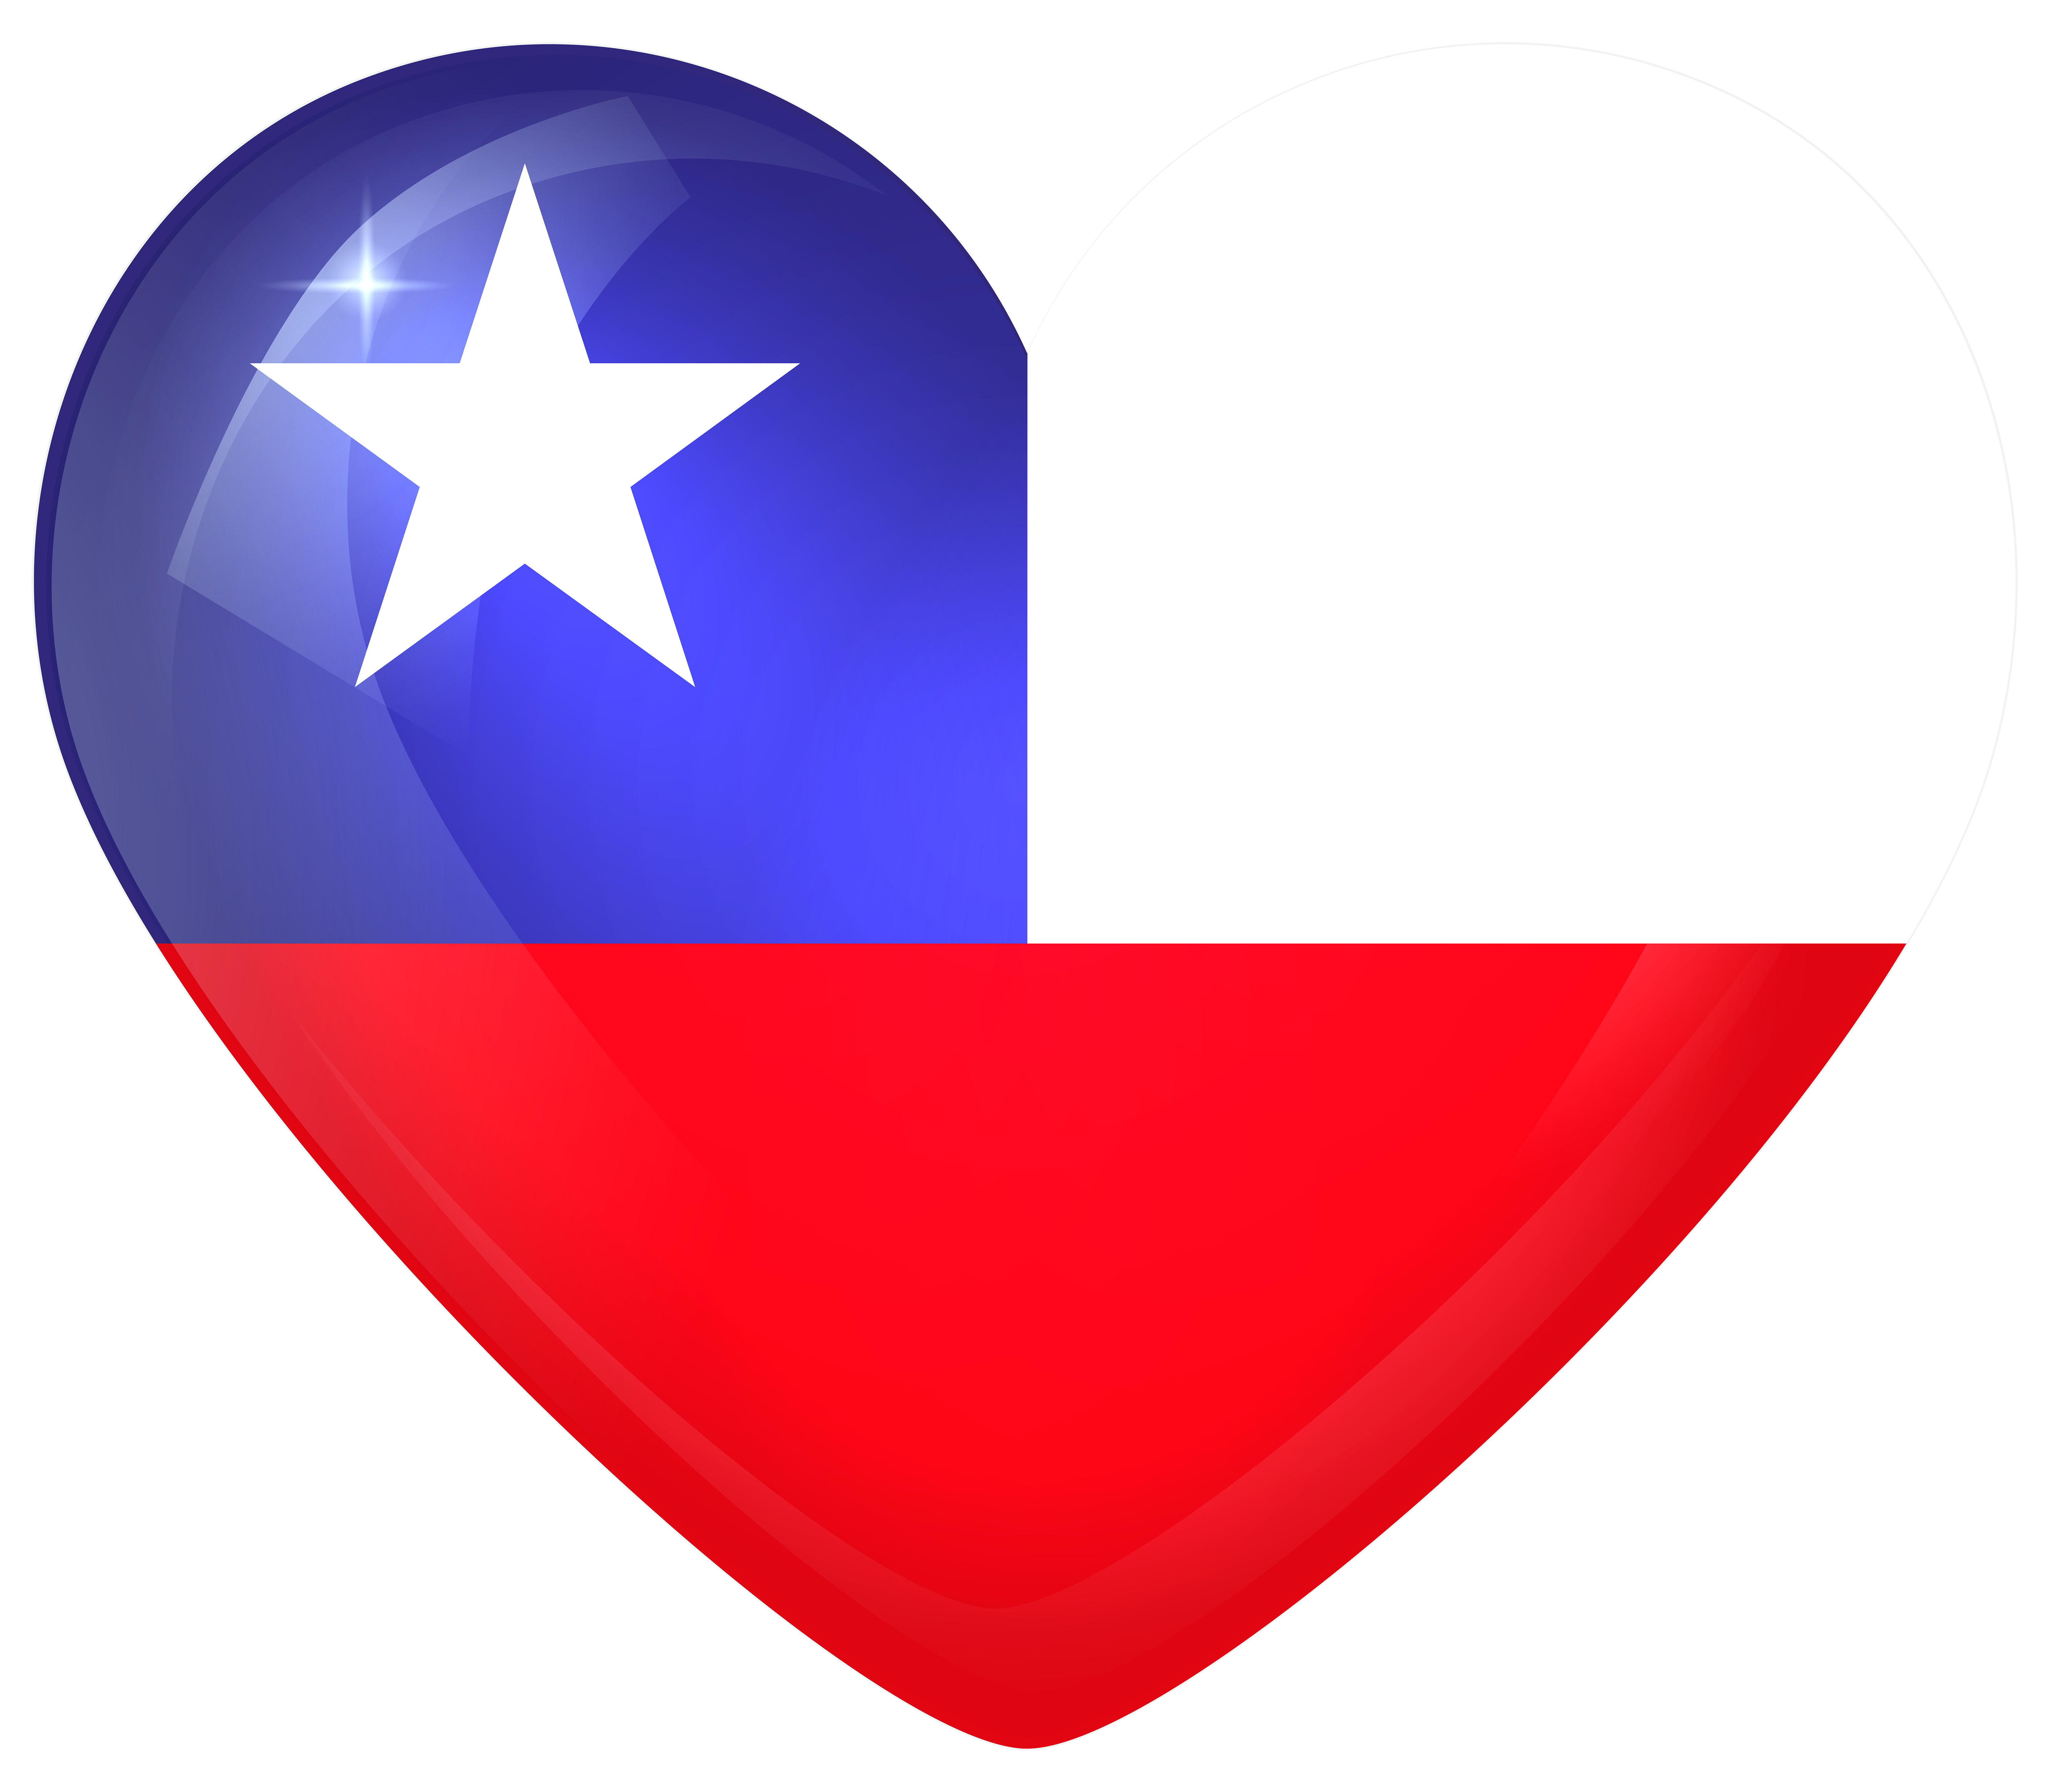 Chile large flag gallery. Clipart guitar heart